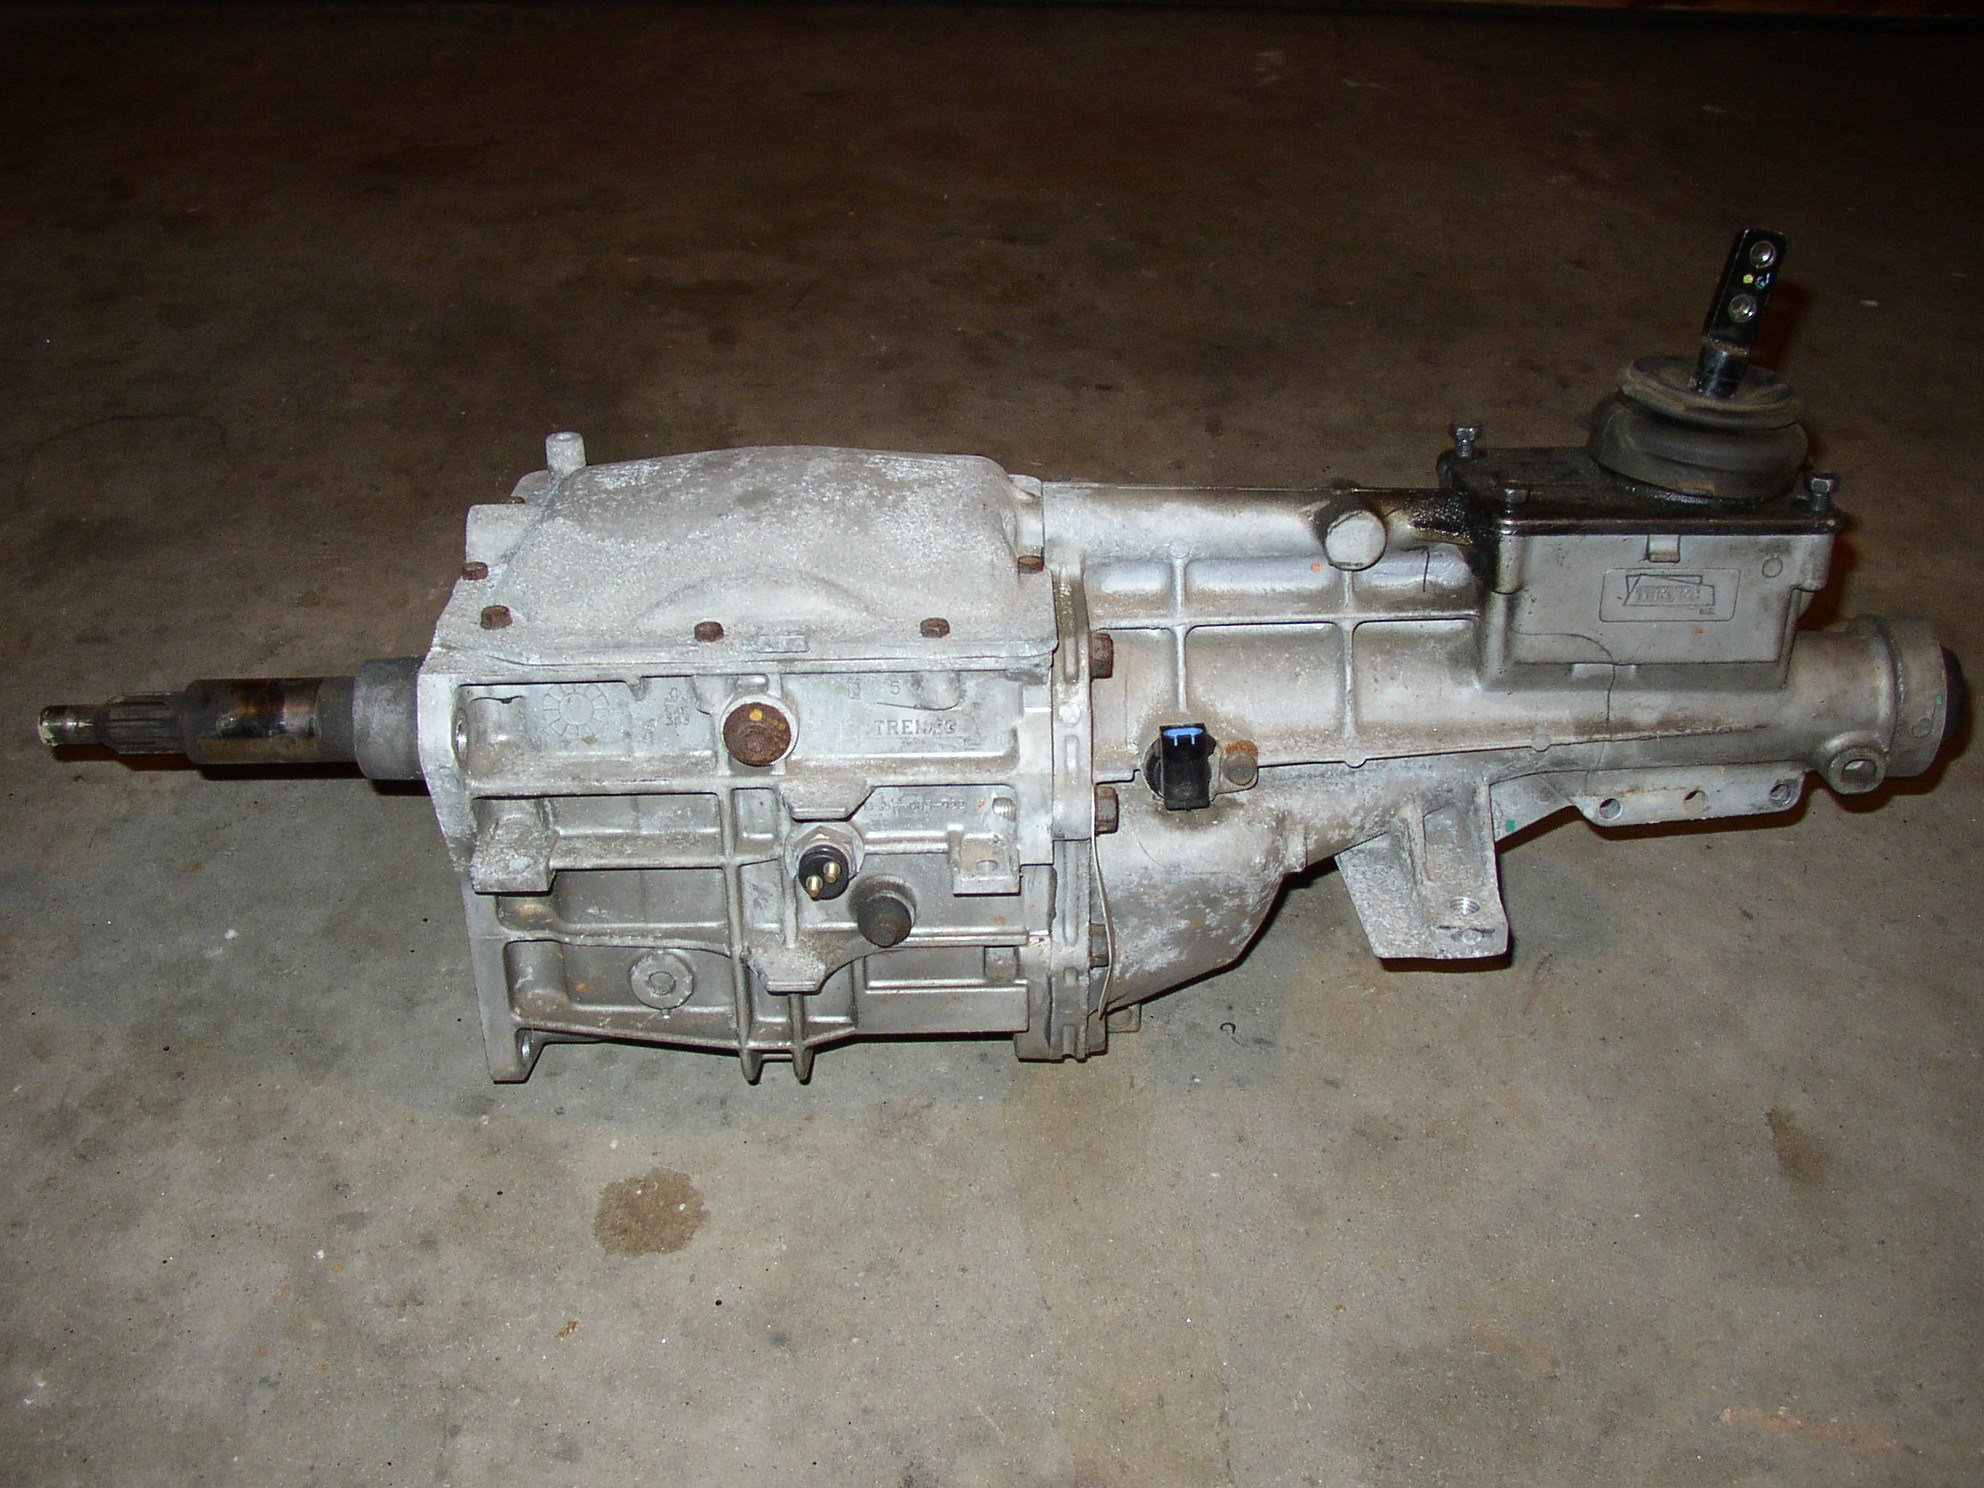 88710d1264294947 2000 mustang 3 8l automatic manual transmission swap p1040813 2000 mustang 3 8l, automatic to manual transmission swap ford 1989 Mustang Alternator Wiring Diagram at love-stories.co